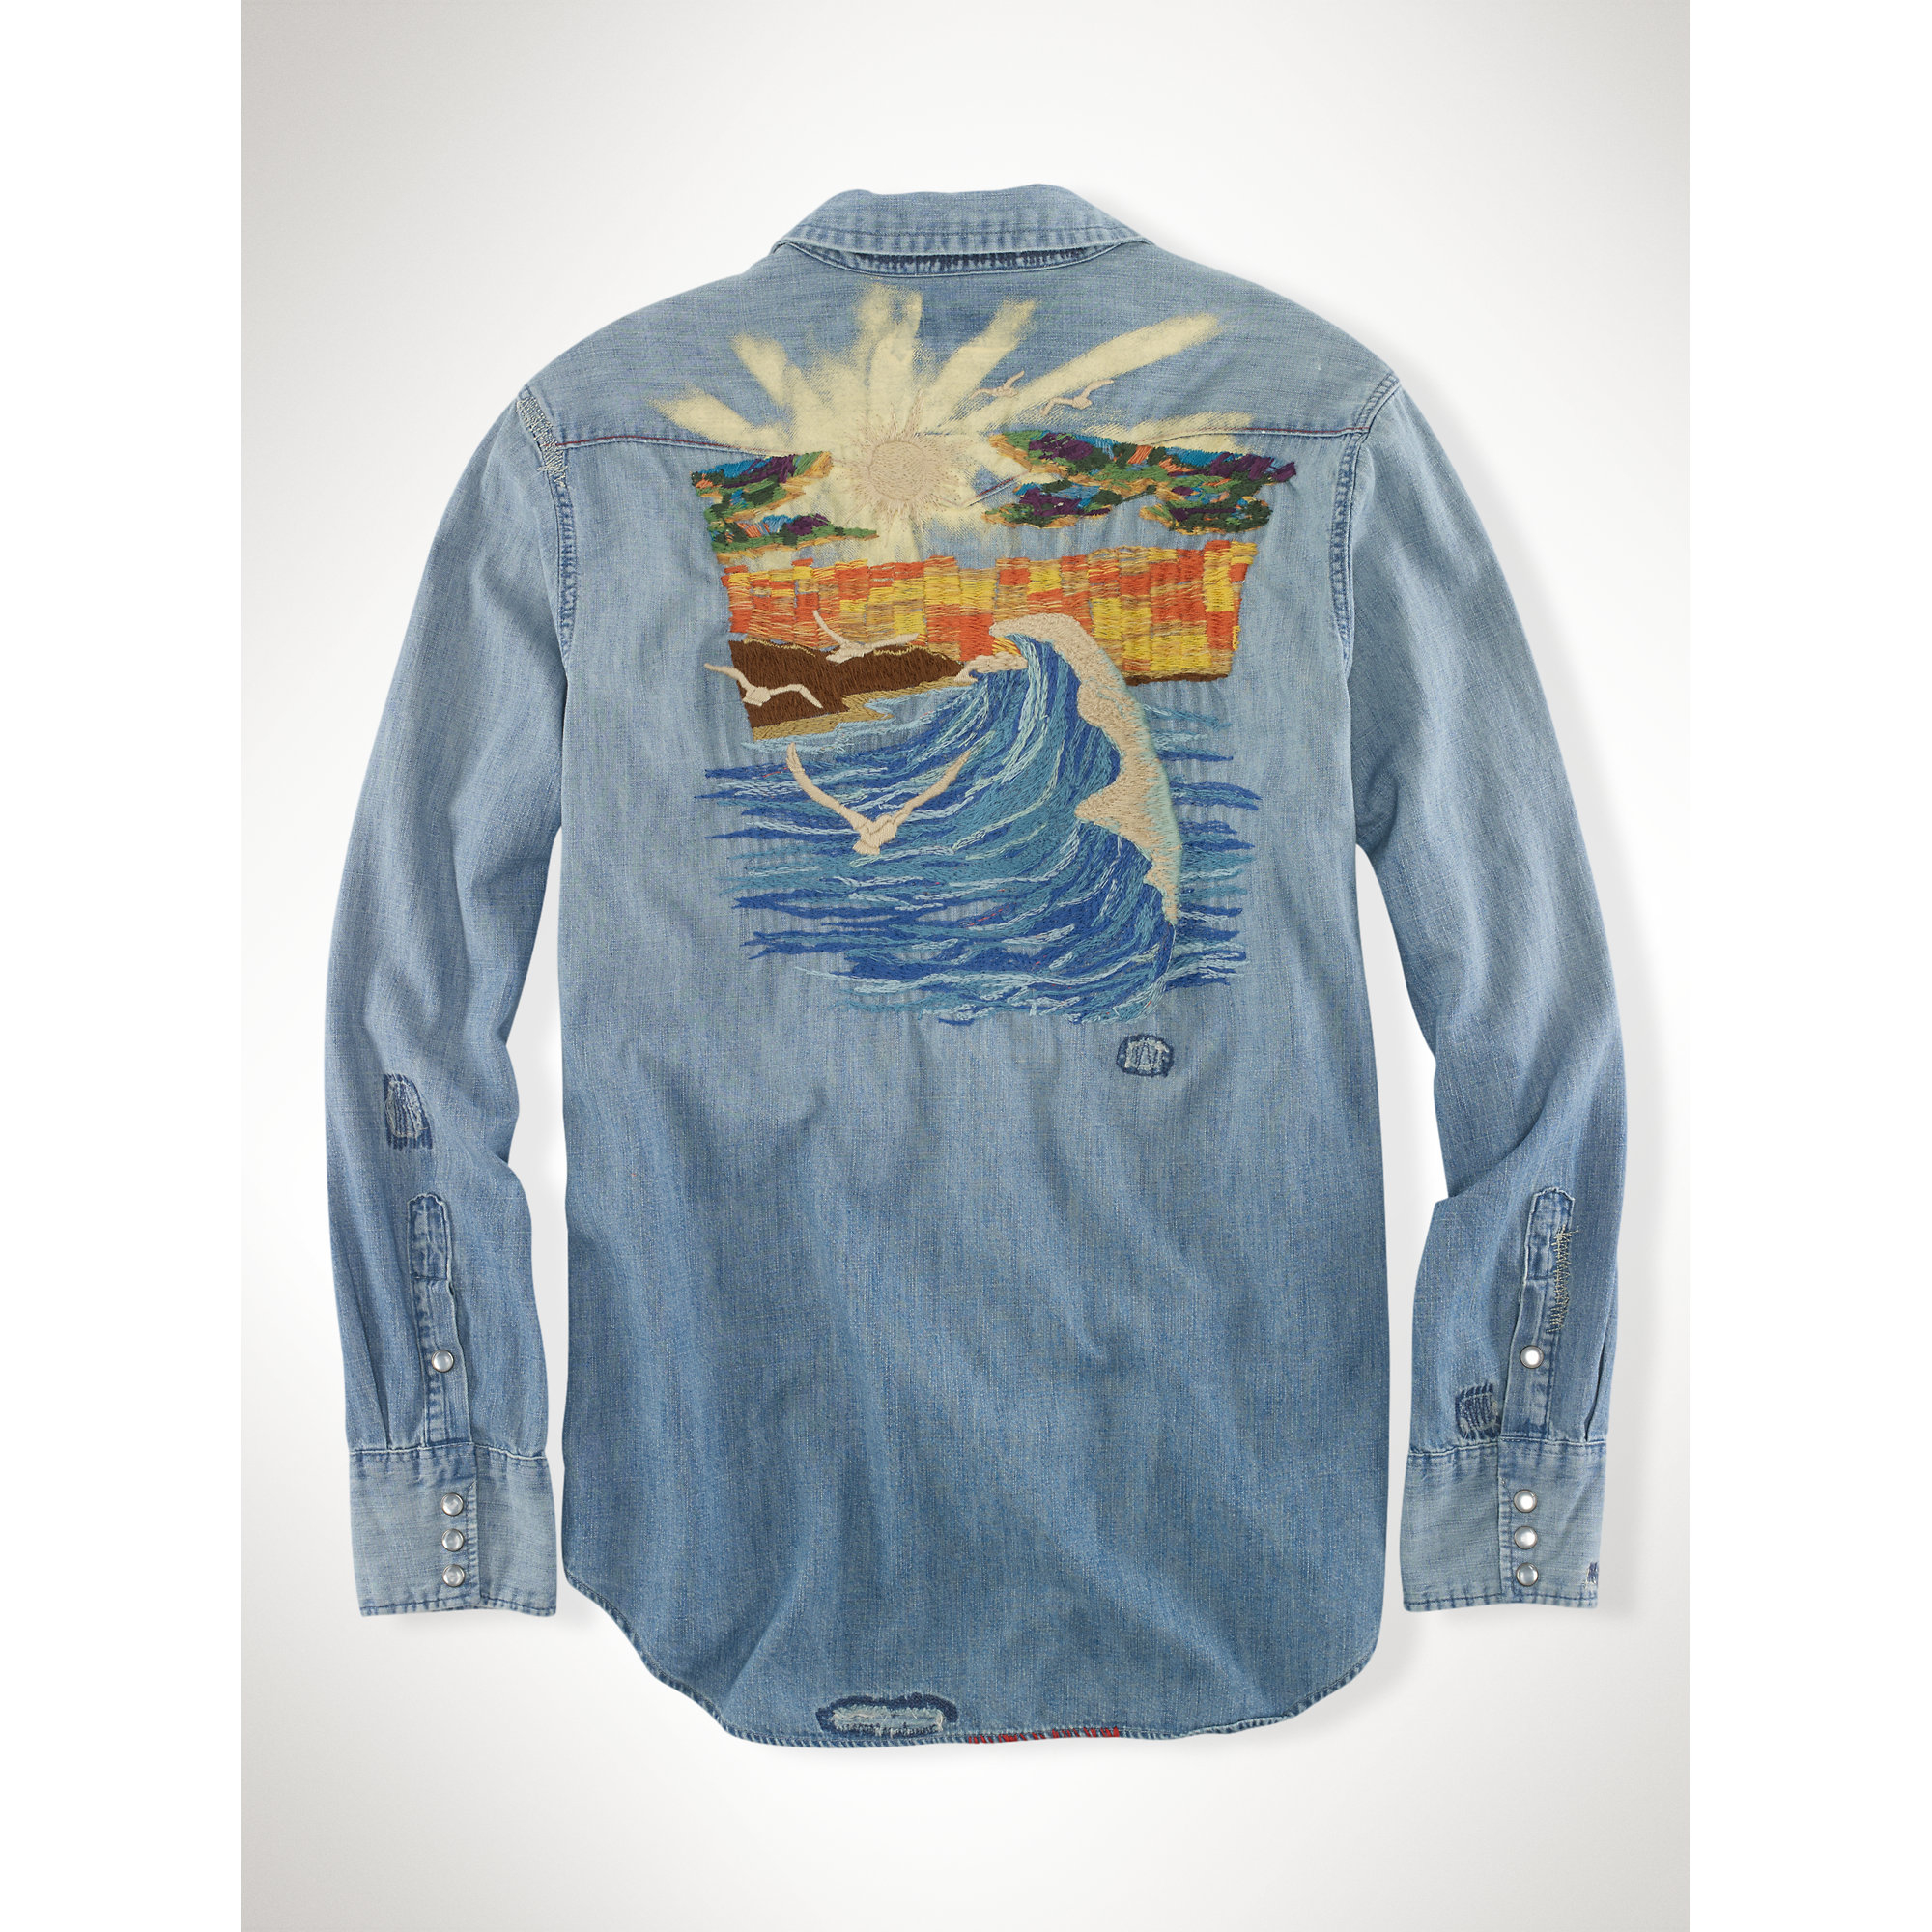 Polo ralph lauren embroidered denim workshirt in blue for for Embroidered work shirts online